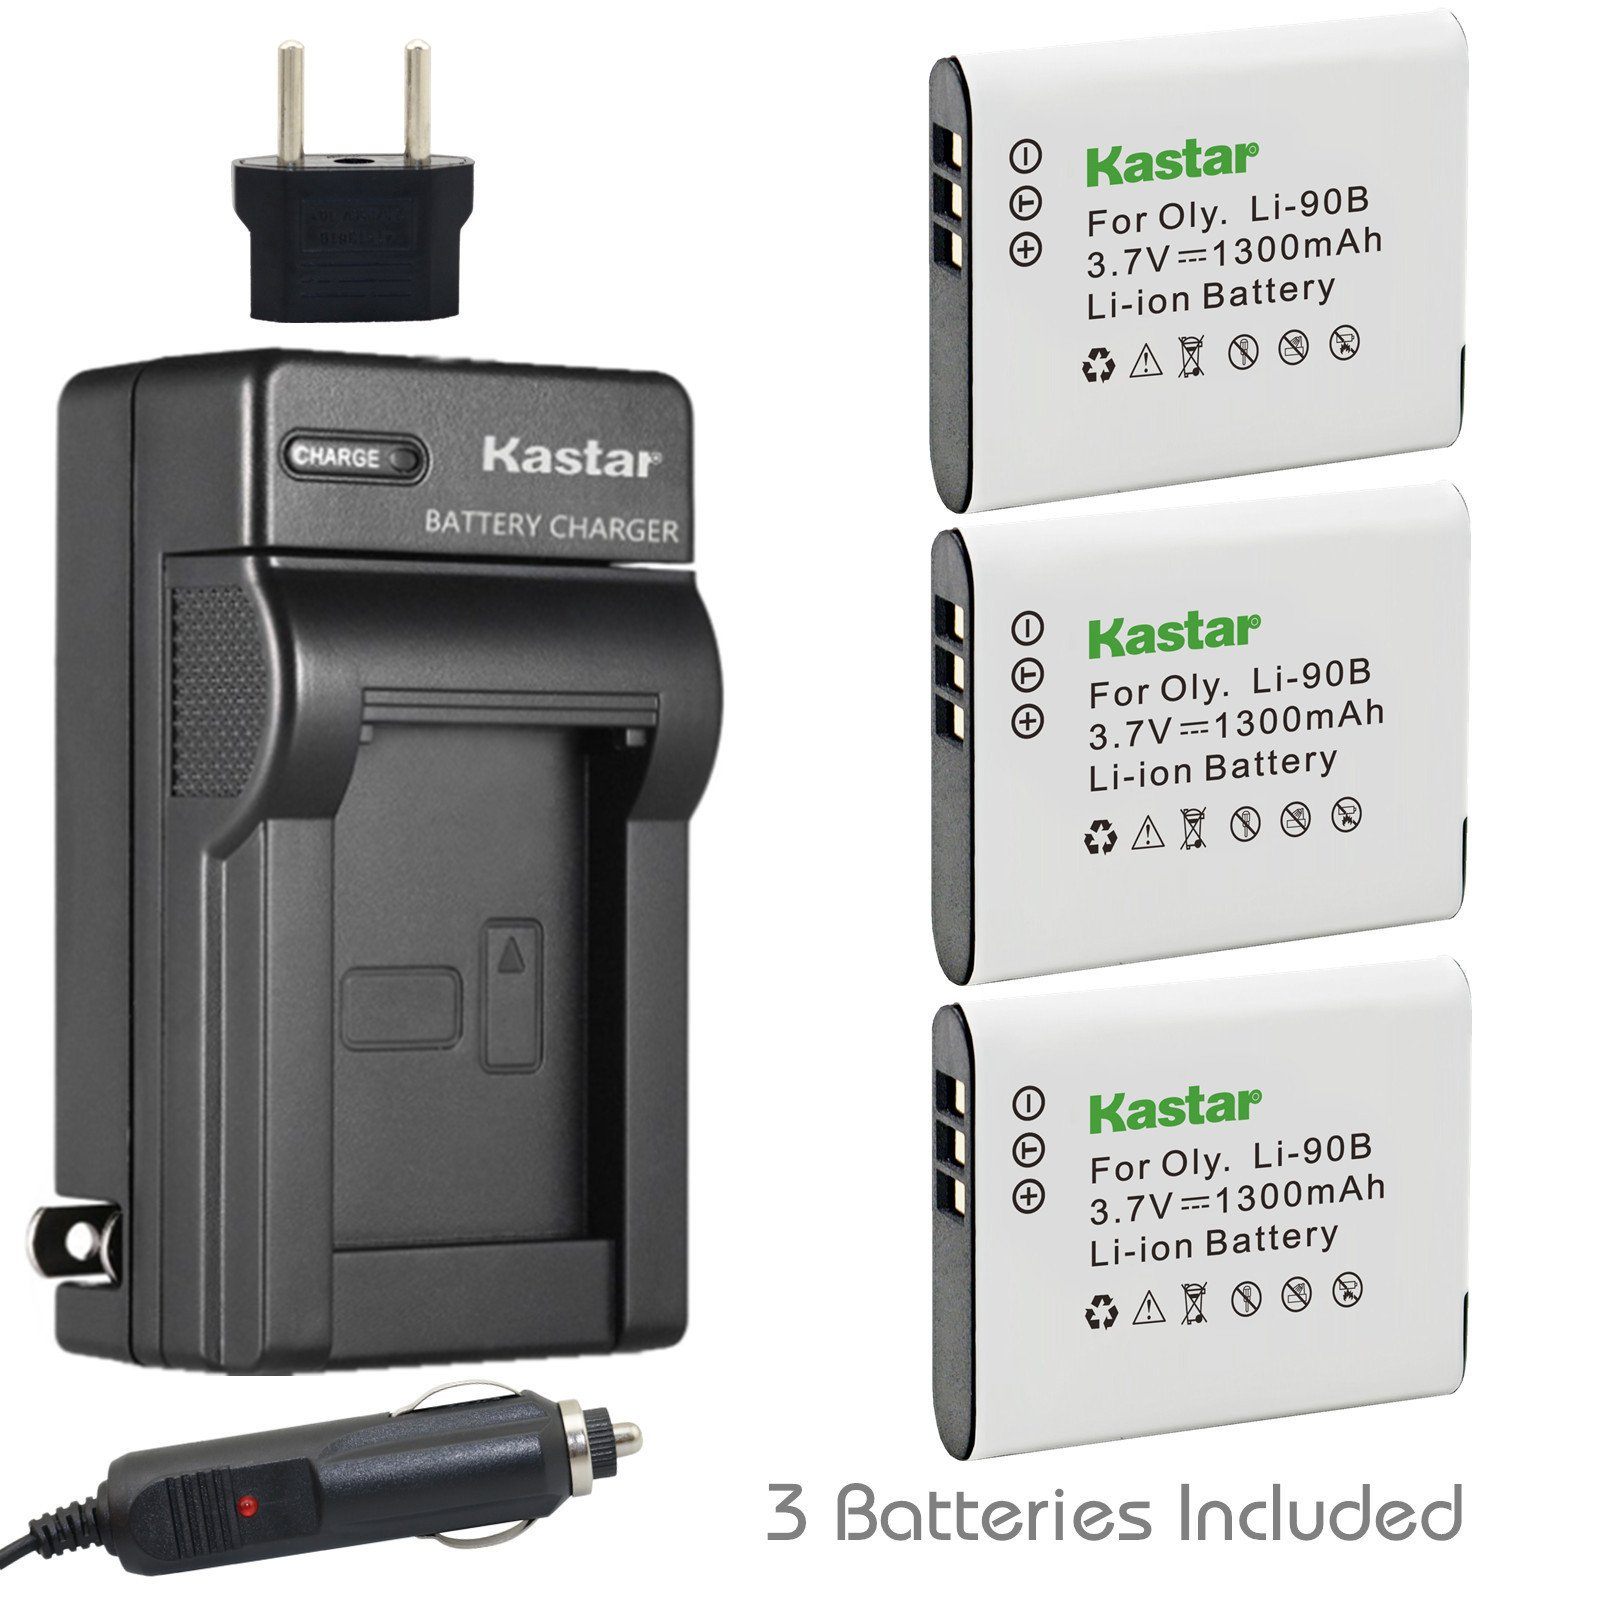 Kastar Battery (3-Pack) and Charger Kit for Olympus LI-90B, LI-92B, UC-90 work with Olympus SH-1, SH-50 iHS, SH-60, SP-100, SP-100EE, Tough TG-1 iHS, Tough TG-2 iHS, Tough TG-3, XZ-2 iHS Cameras